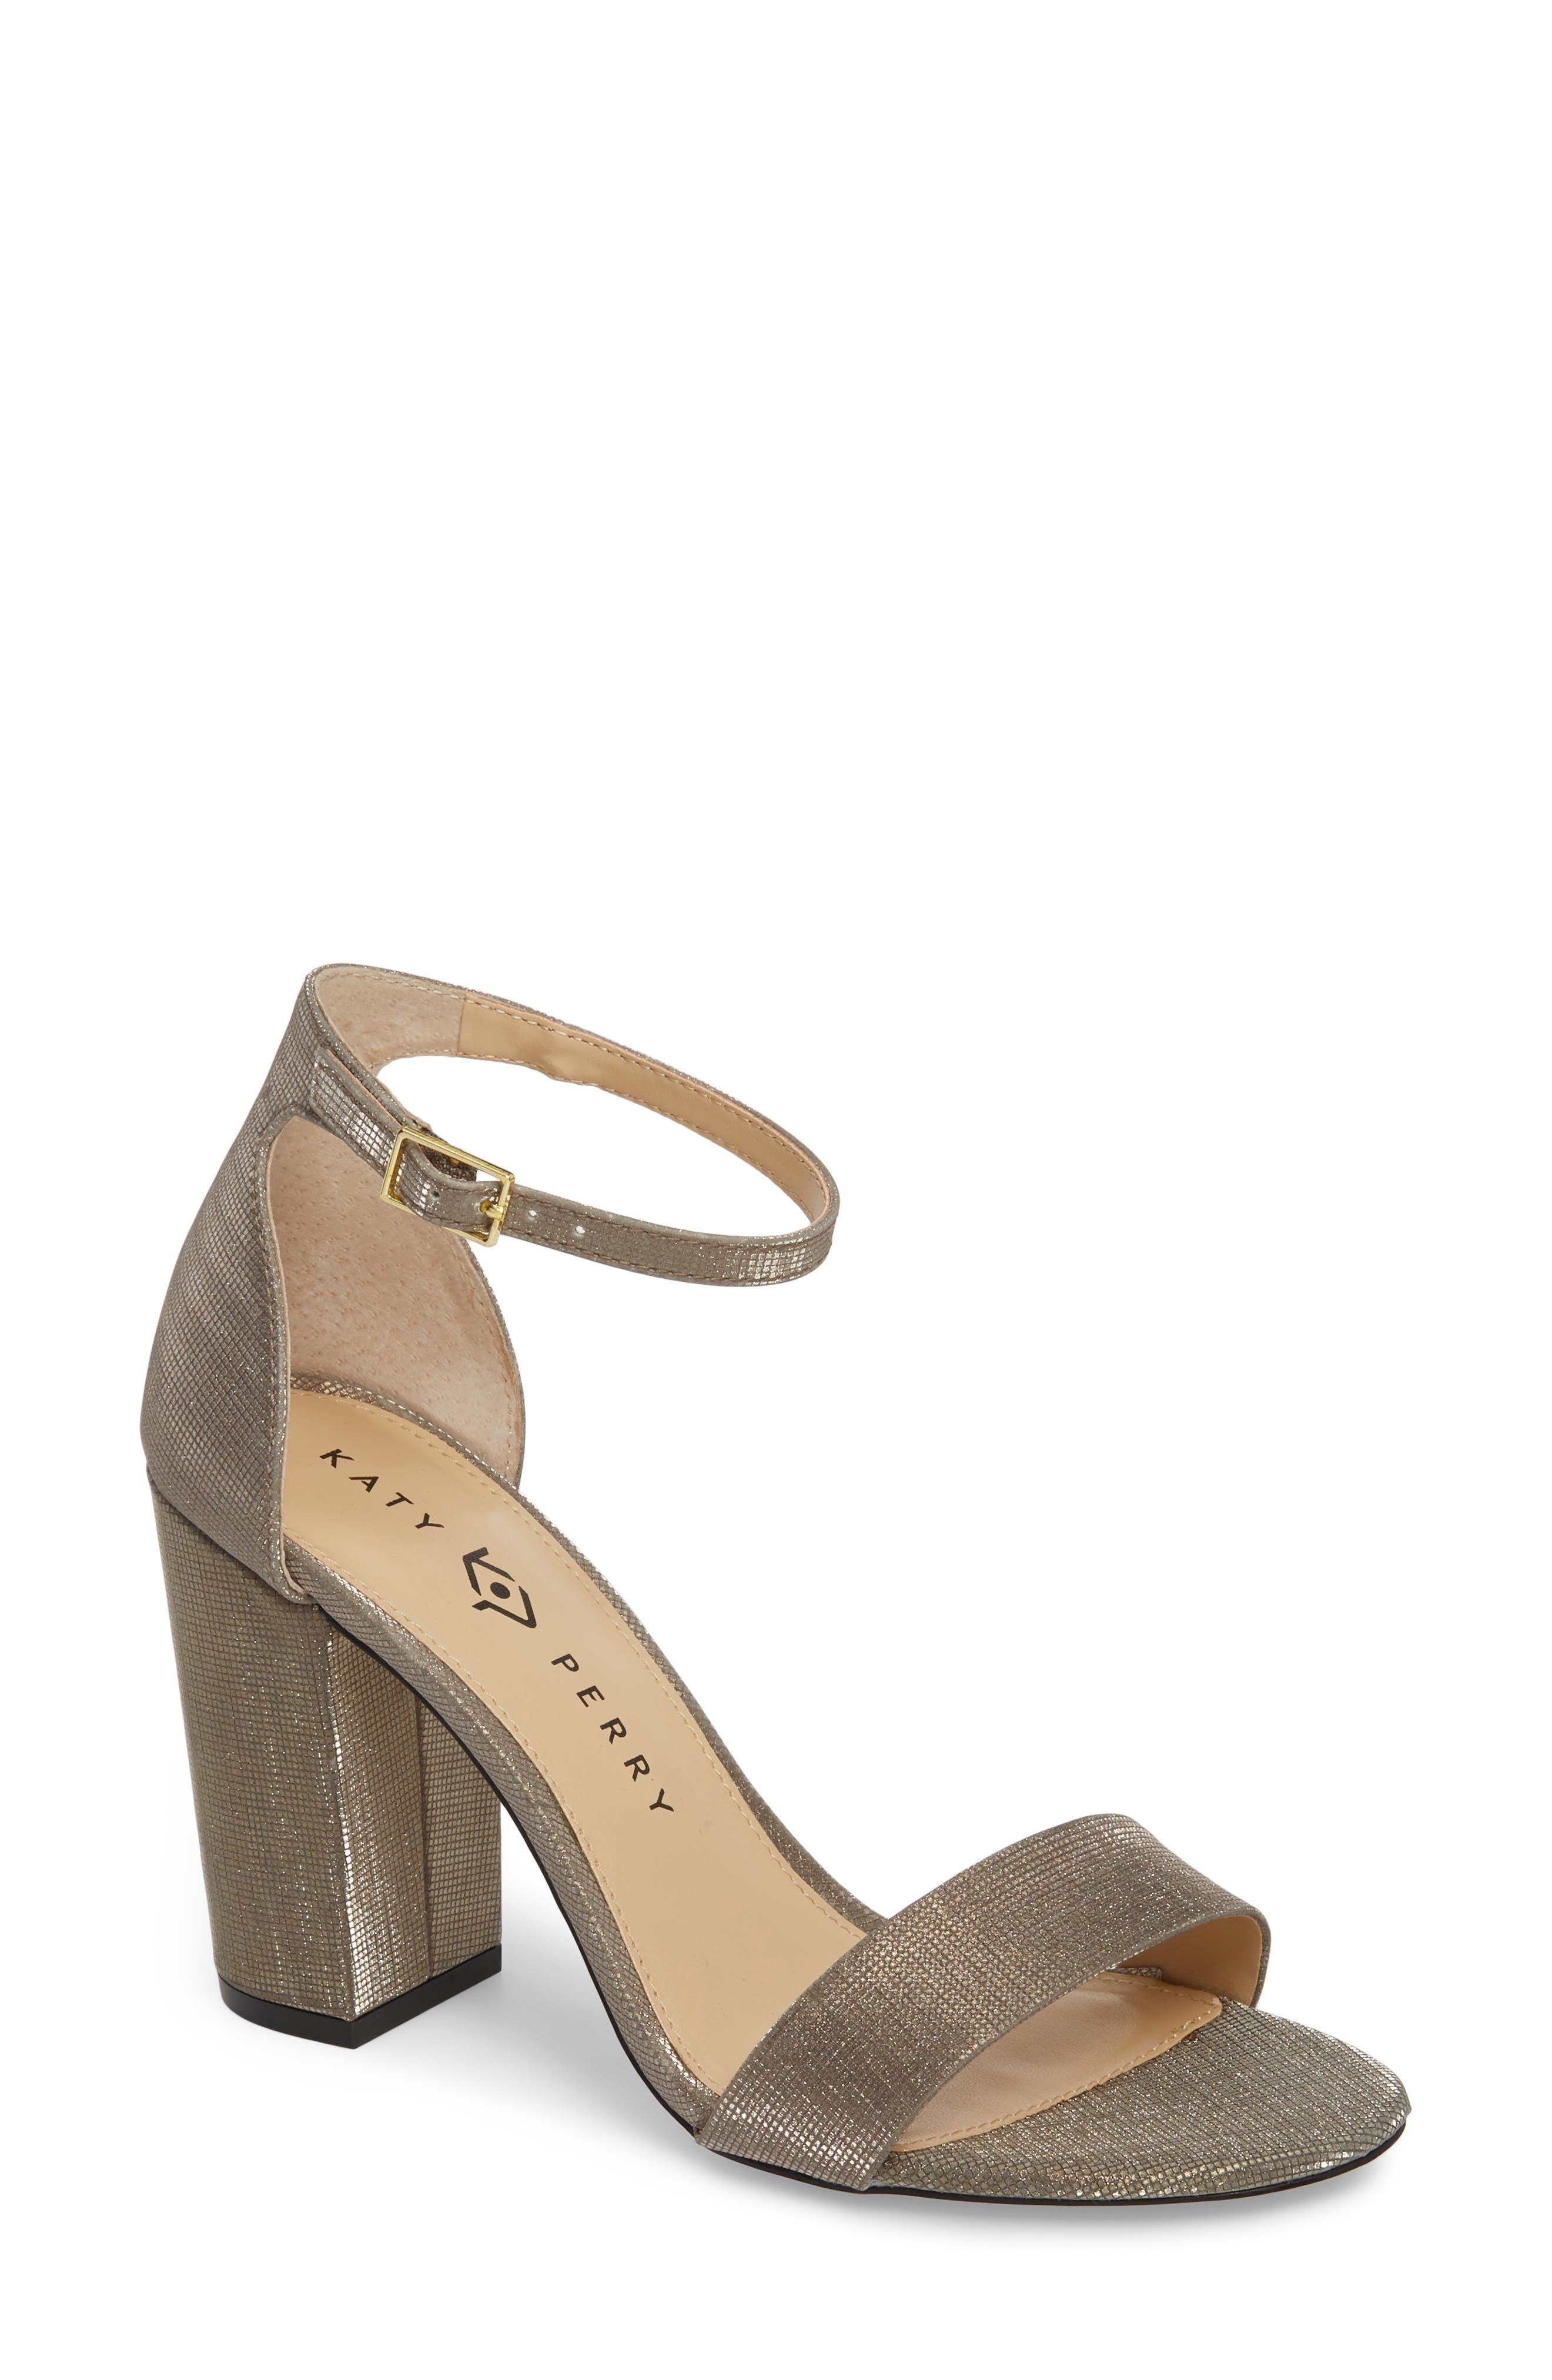 Ankle Strap Sandal,                         Main,                         color, Dark Gold Fabric